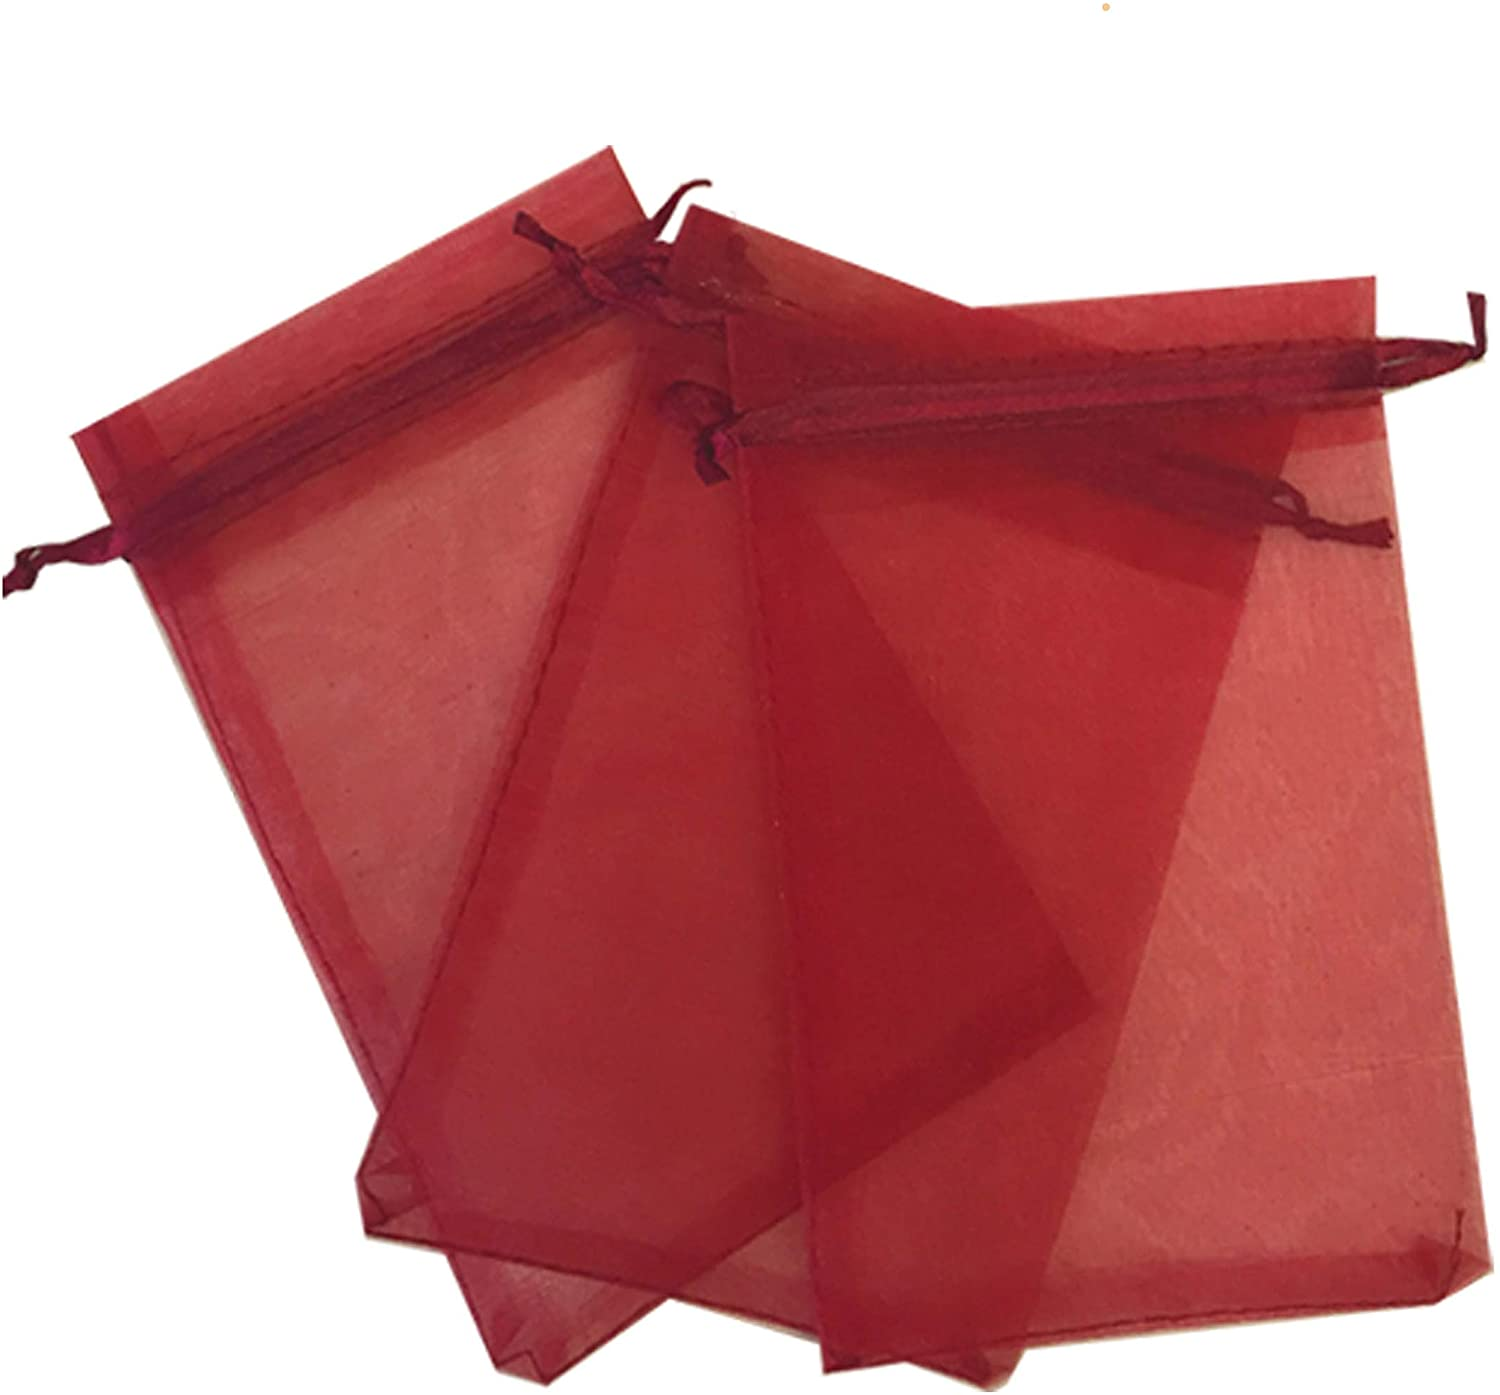 150 Pcs Burgundy 4x6 Sheer Drawstring Organza Bags Jewelry Pouches Wedding Party Favor Gift Bags Gift Bags Candy Bags [Kyezi Design and Craft]